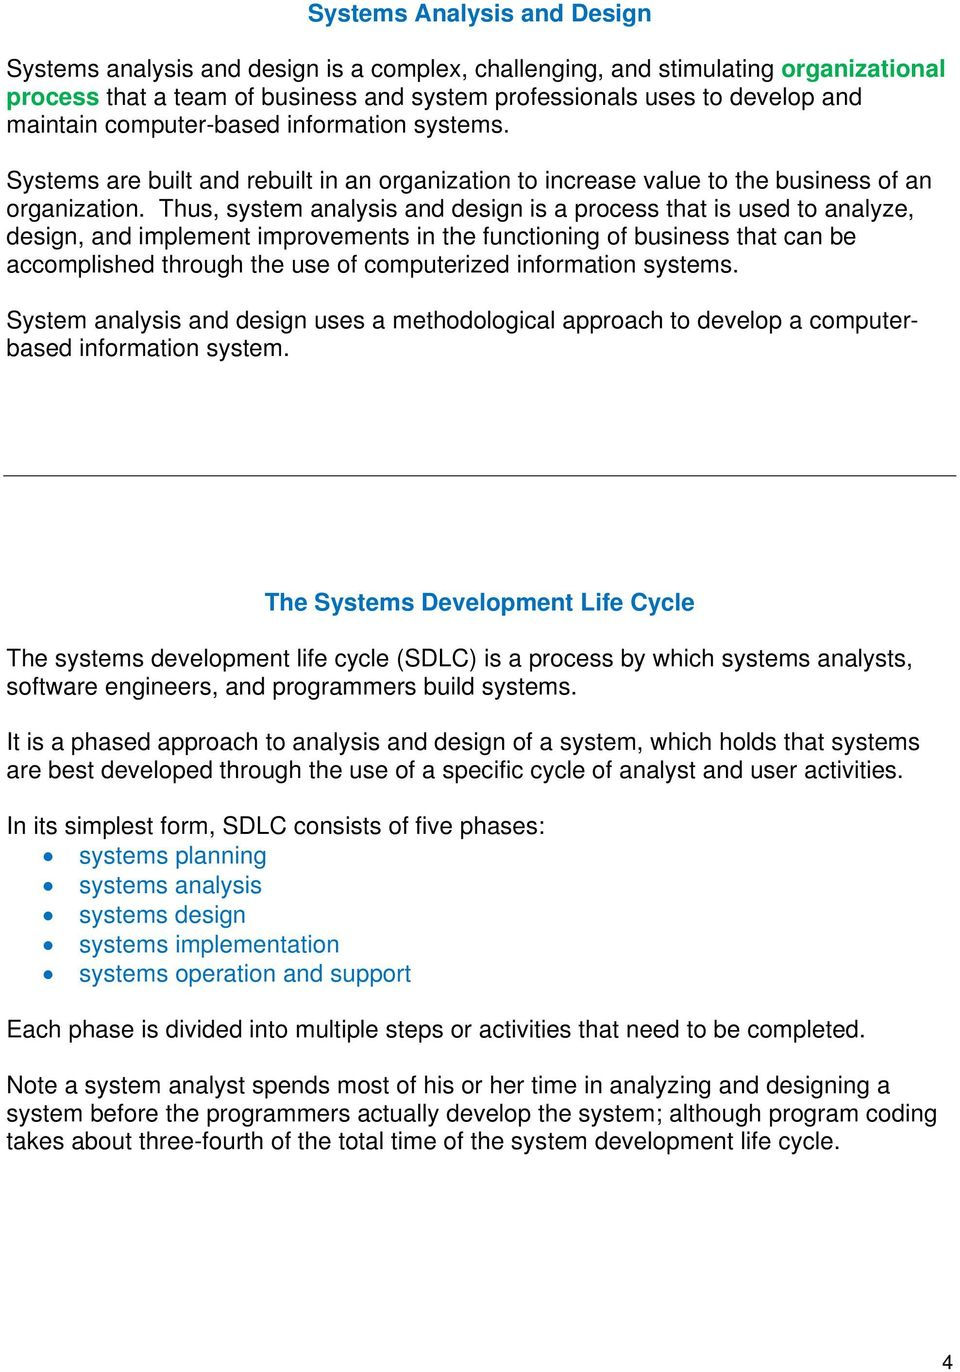 Thus, system analysis and design is a process that is used to analyze, design, and implement improvements in the functioning of business that can be accomplished through the use of computerized